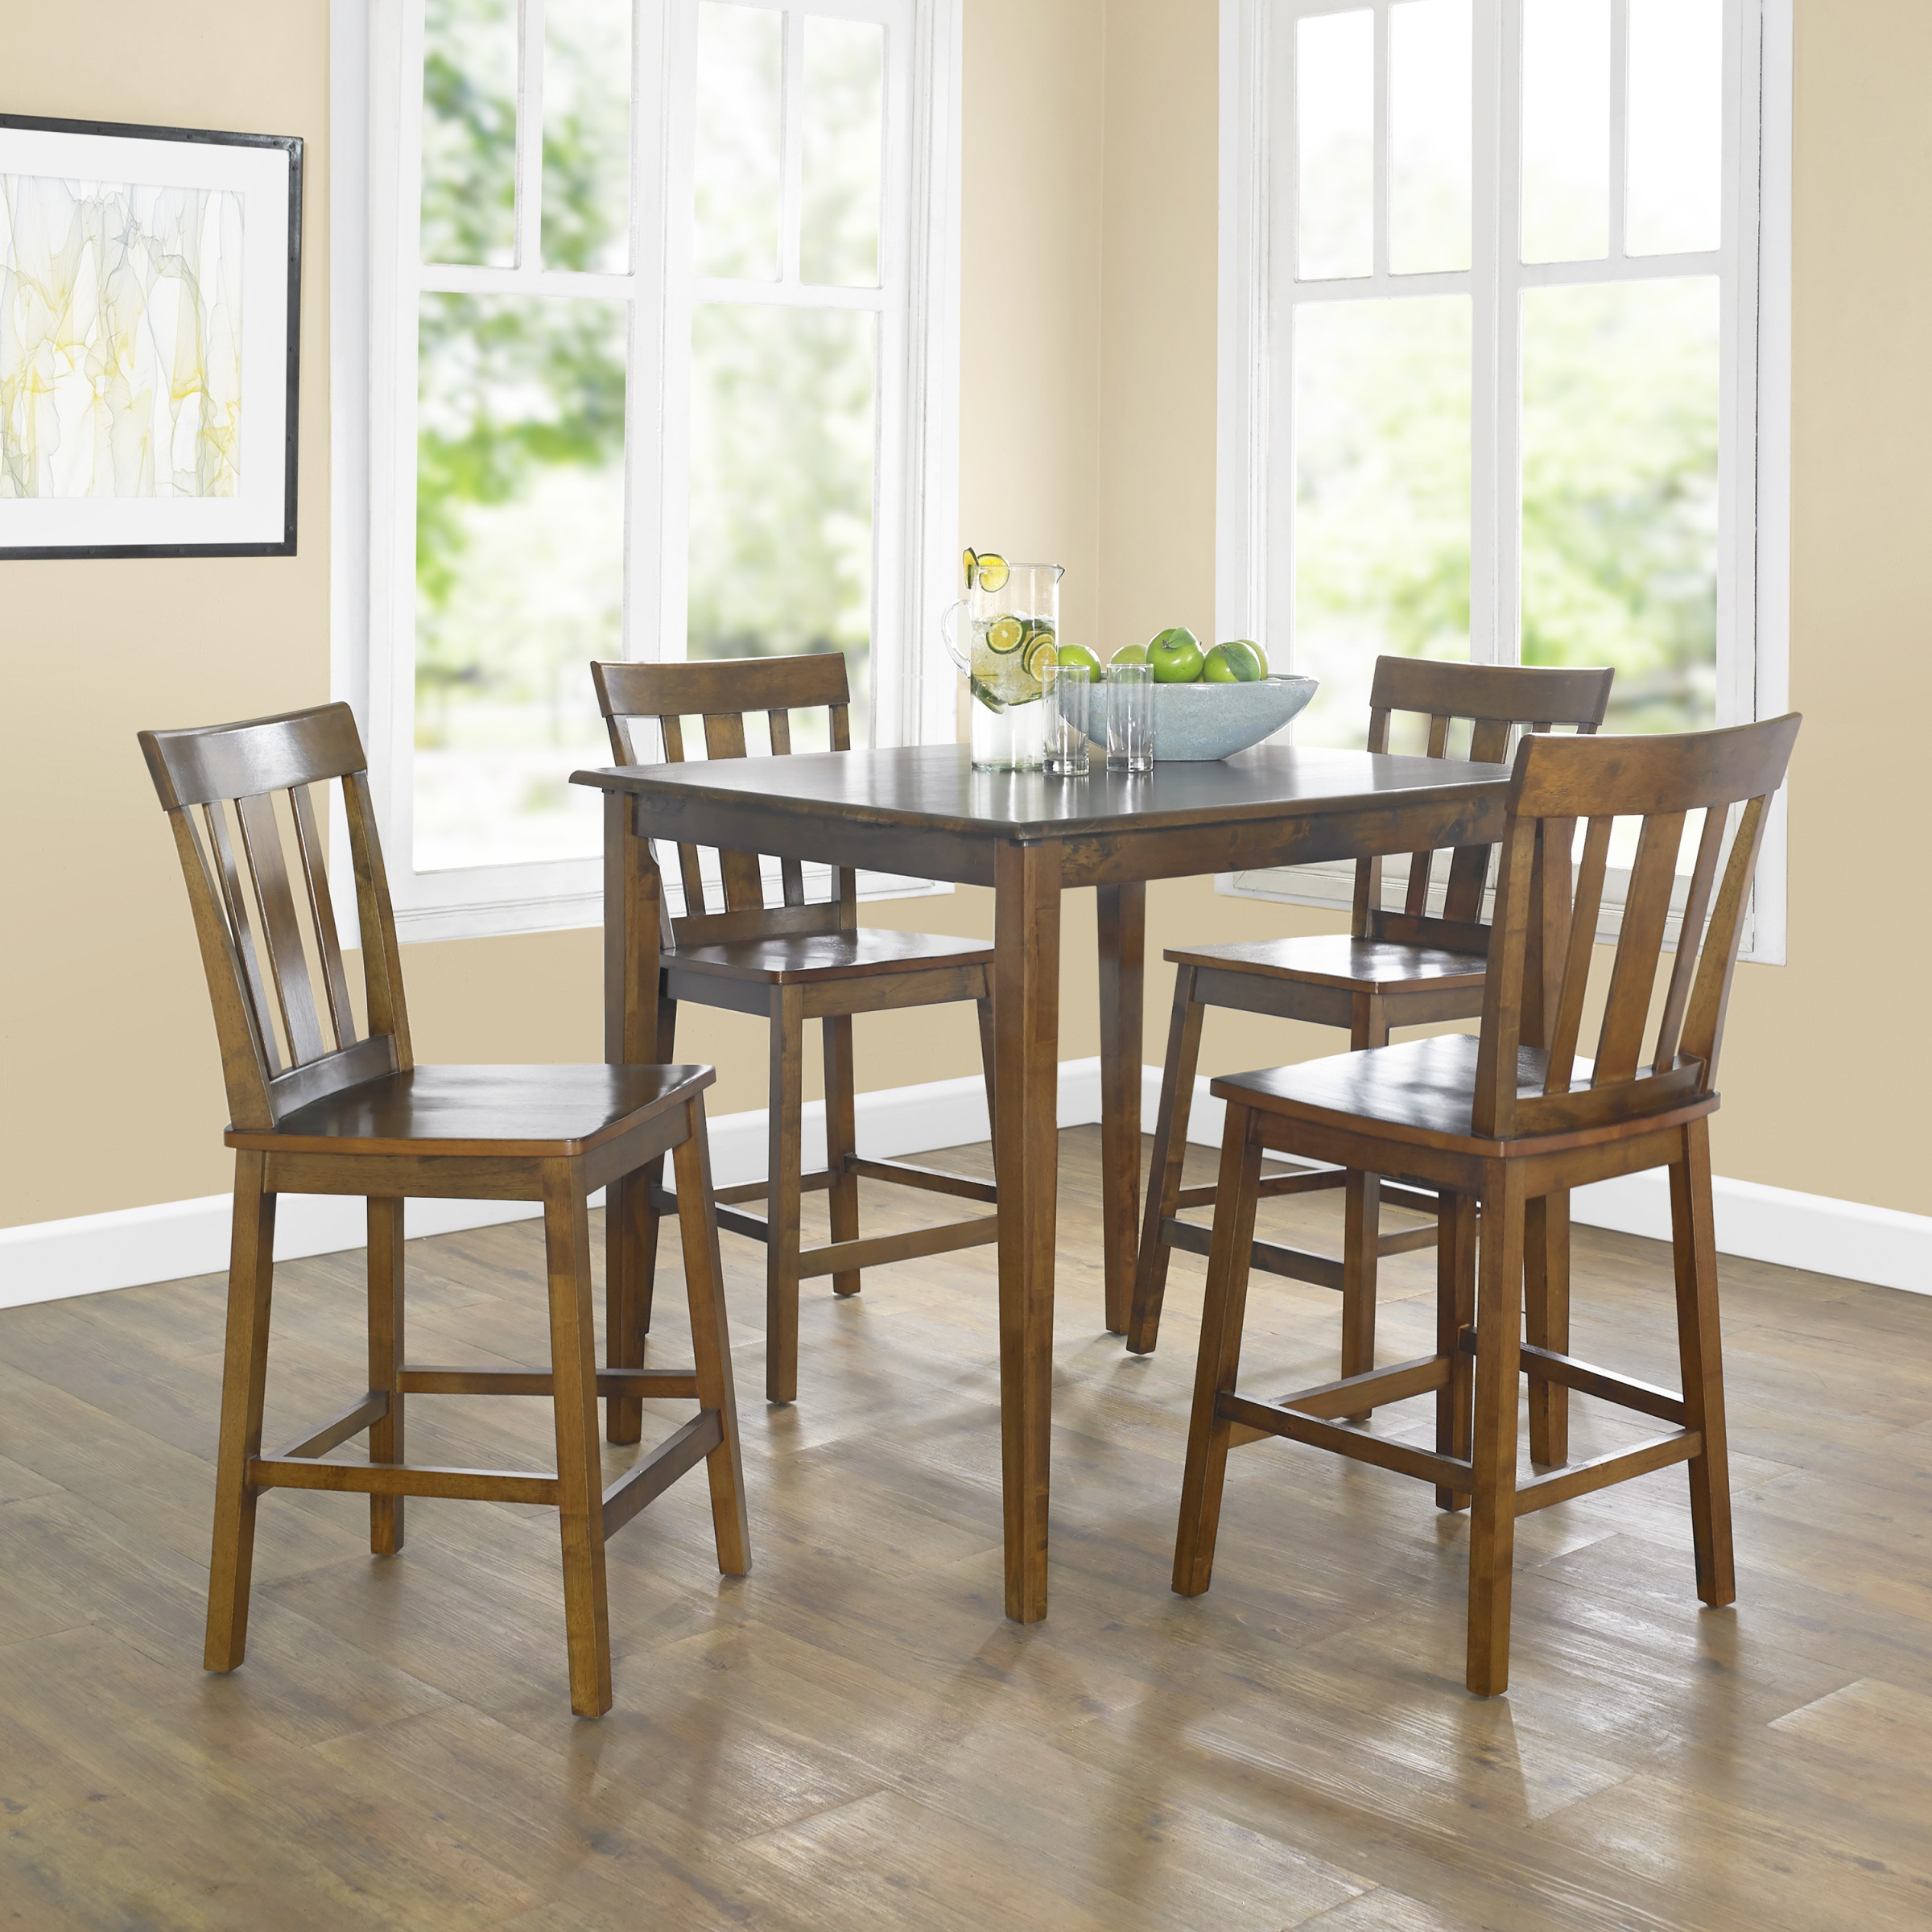 Kitchen & Dining Furniture – Walmart With Most Recently Released North Reading 5 Piece Dining Table Sets (View 14 of 20)